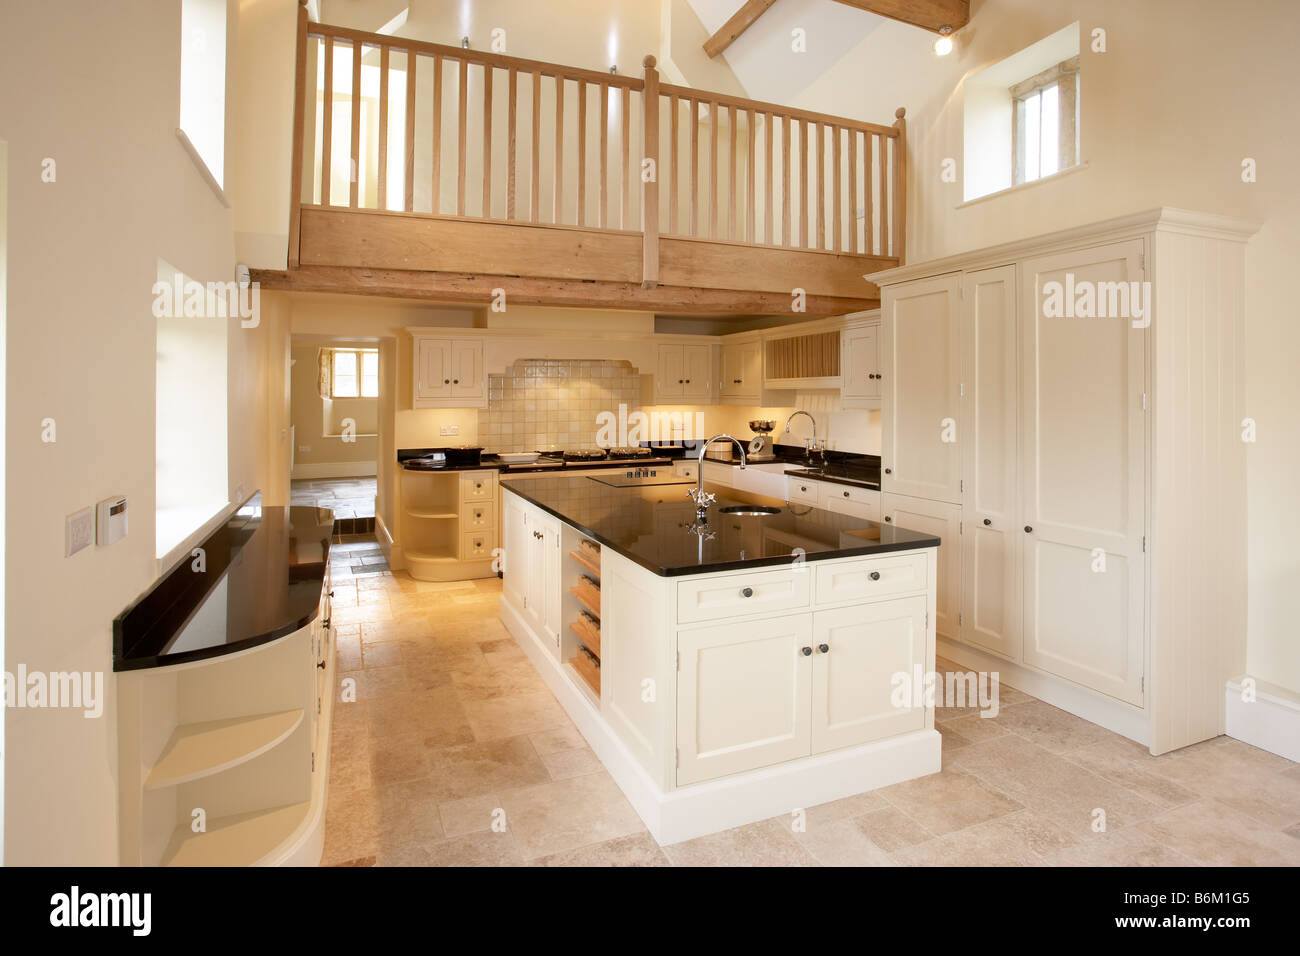 New converted kitchen in cotswold farmhouse with mezzanine for How do i build a mezzanine